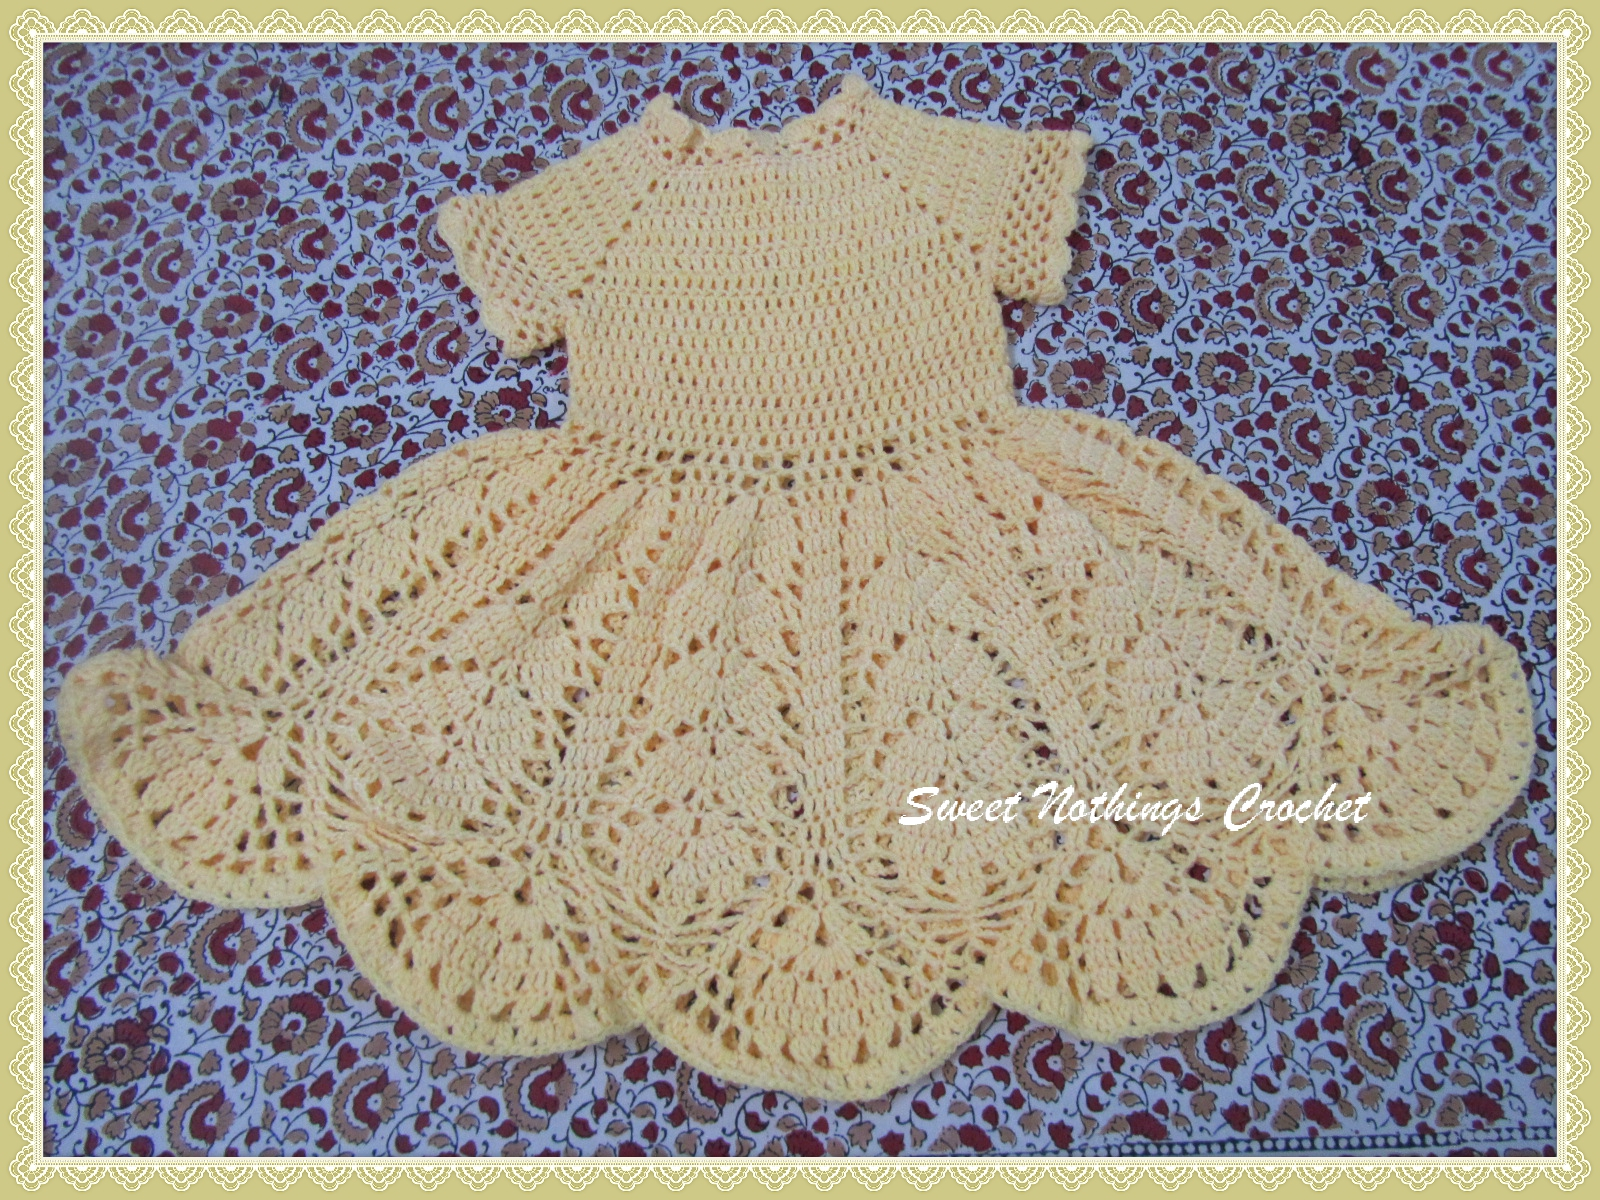 Sweet nothings crochet beautiful lotus baby dress beautiful lotus baby dress free crochet pattern bankloansurffo Choice Image